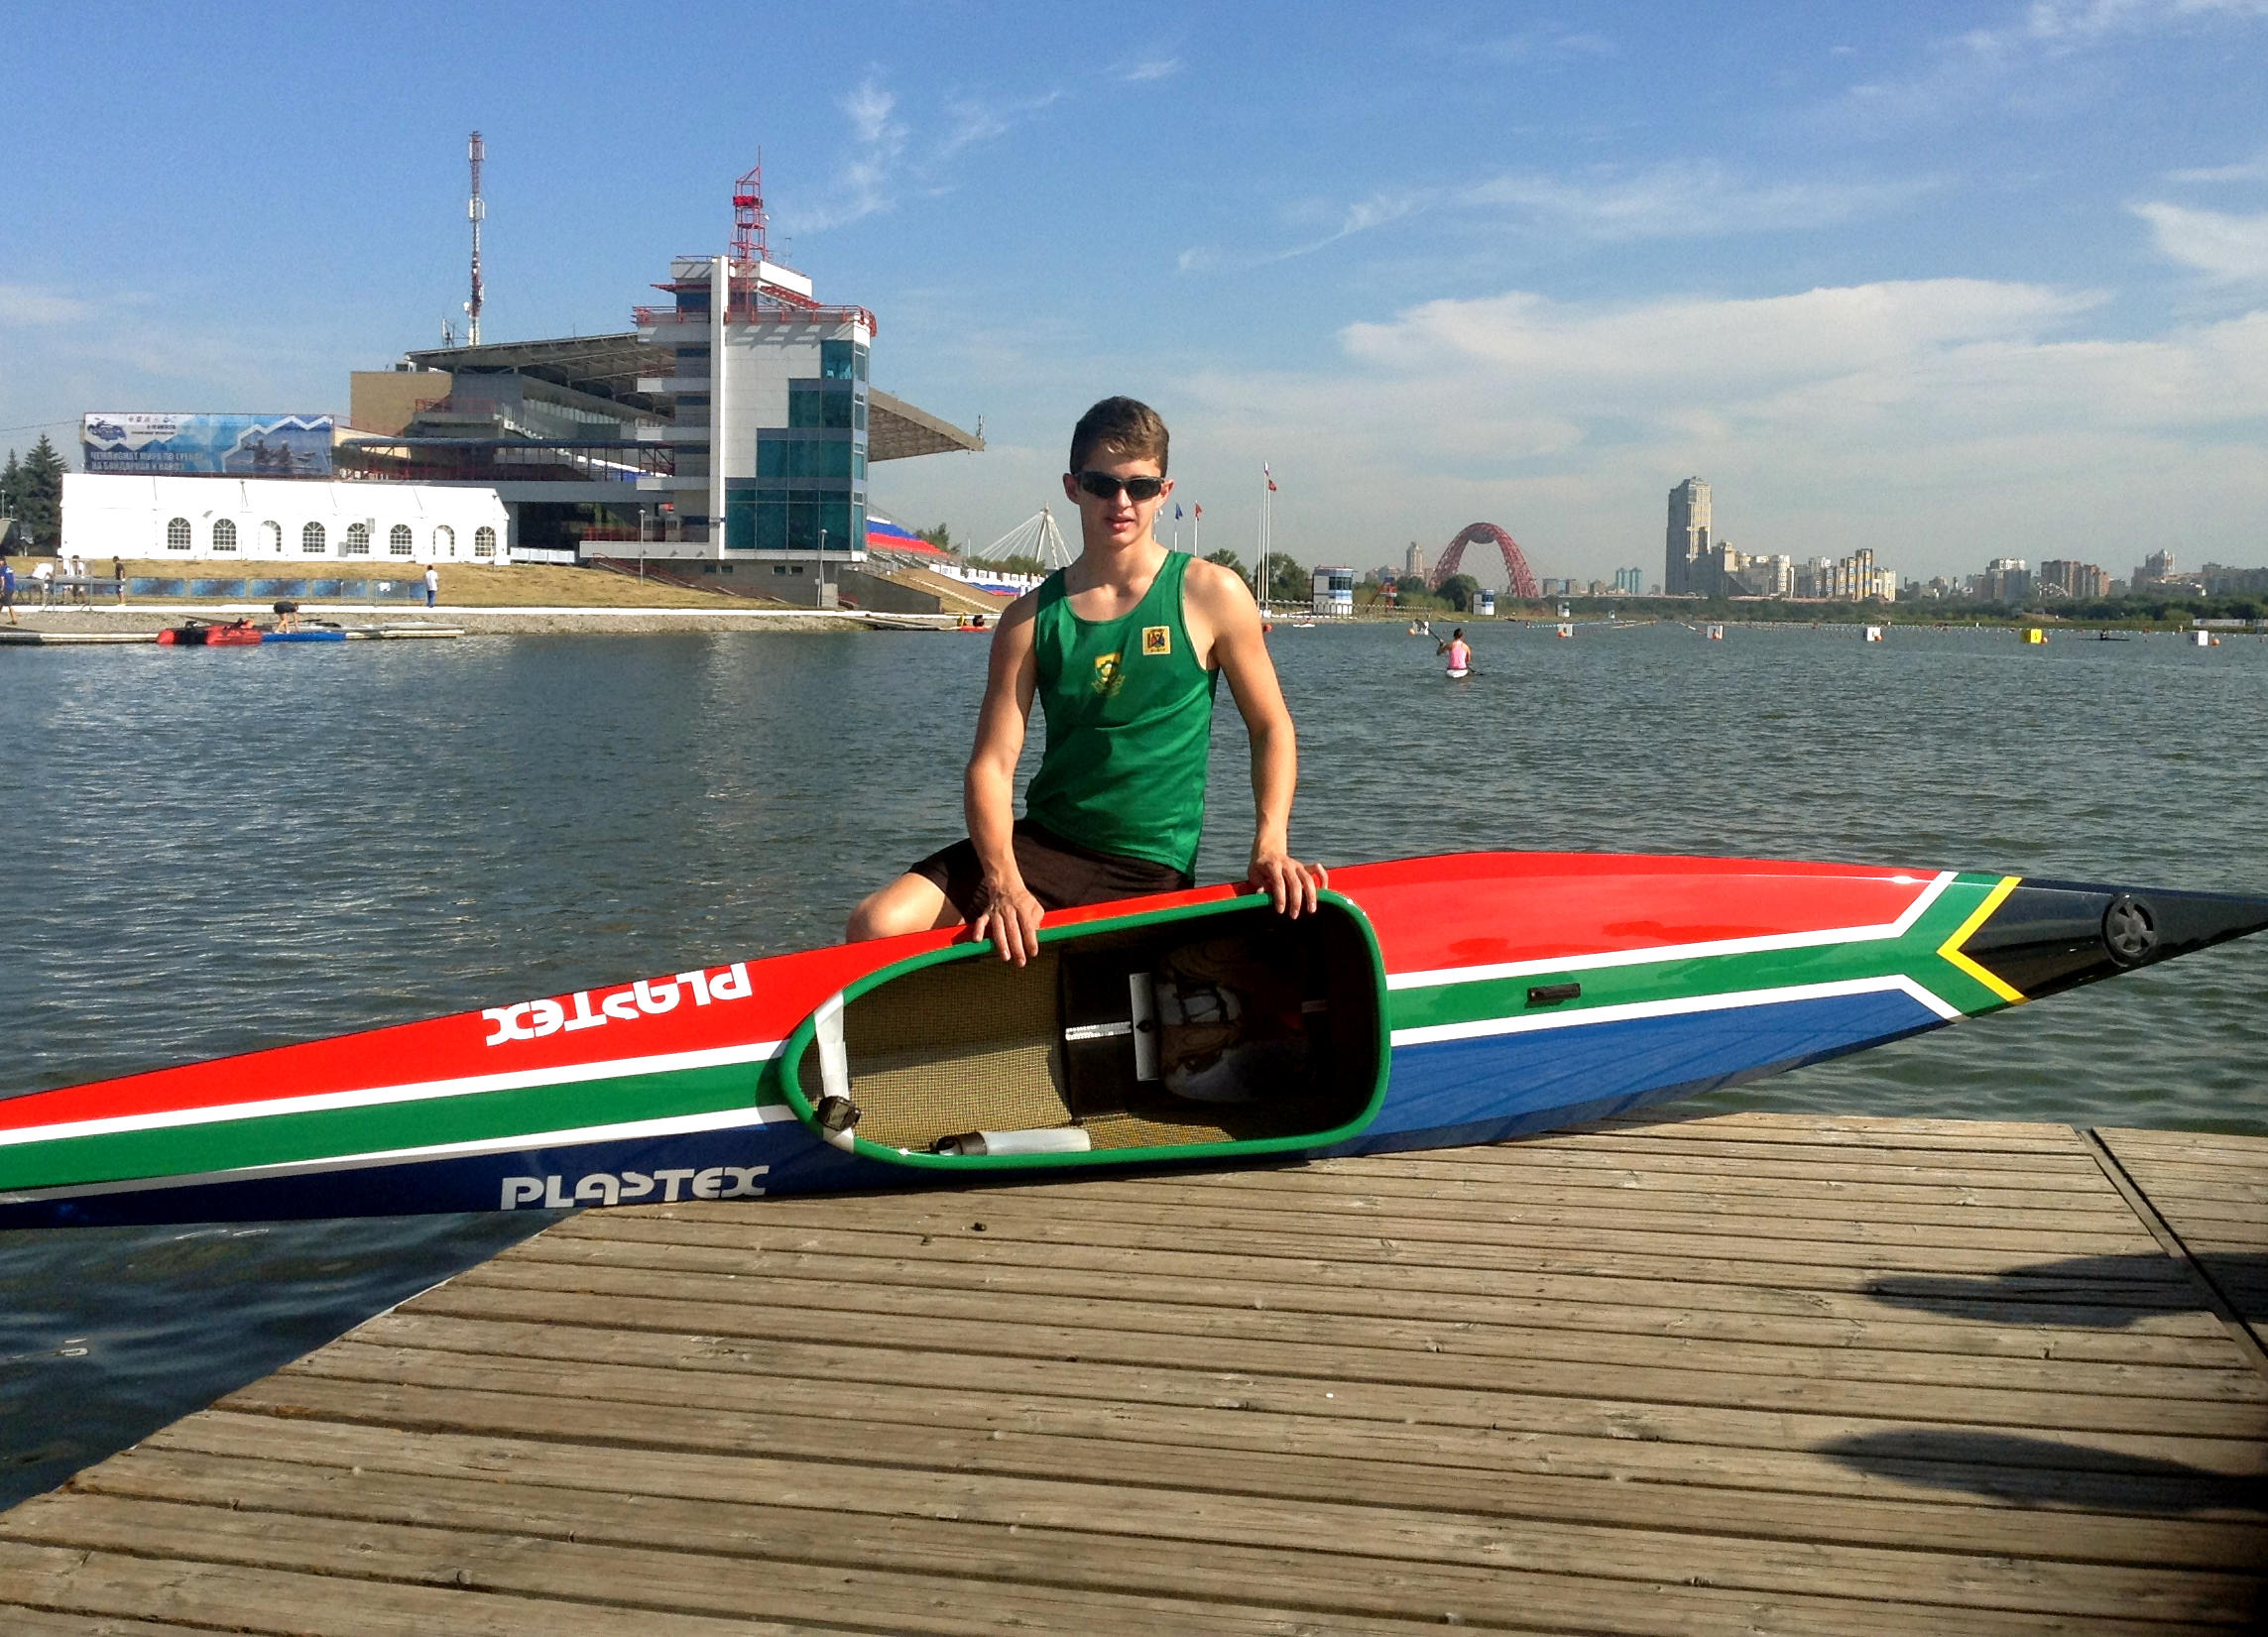 Para-canoeist Jono Wing will compete in the ICF Canoe Sprint World Championships in Moscow, Russia this week as part of his build-up towards the Olympic Games in Rio de Janeiro in 2016. - Supplied/ Gameplan Media